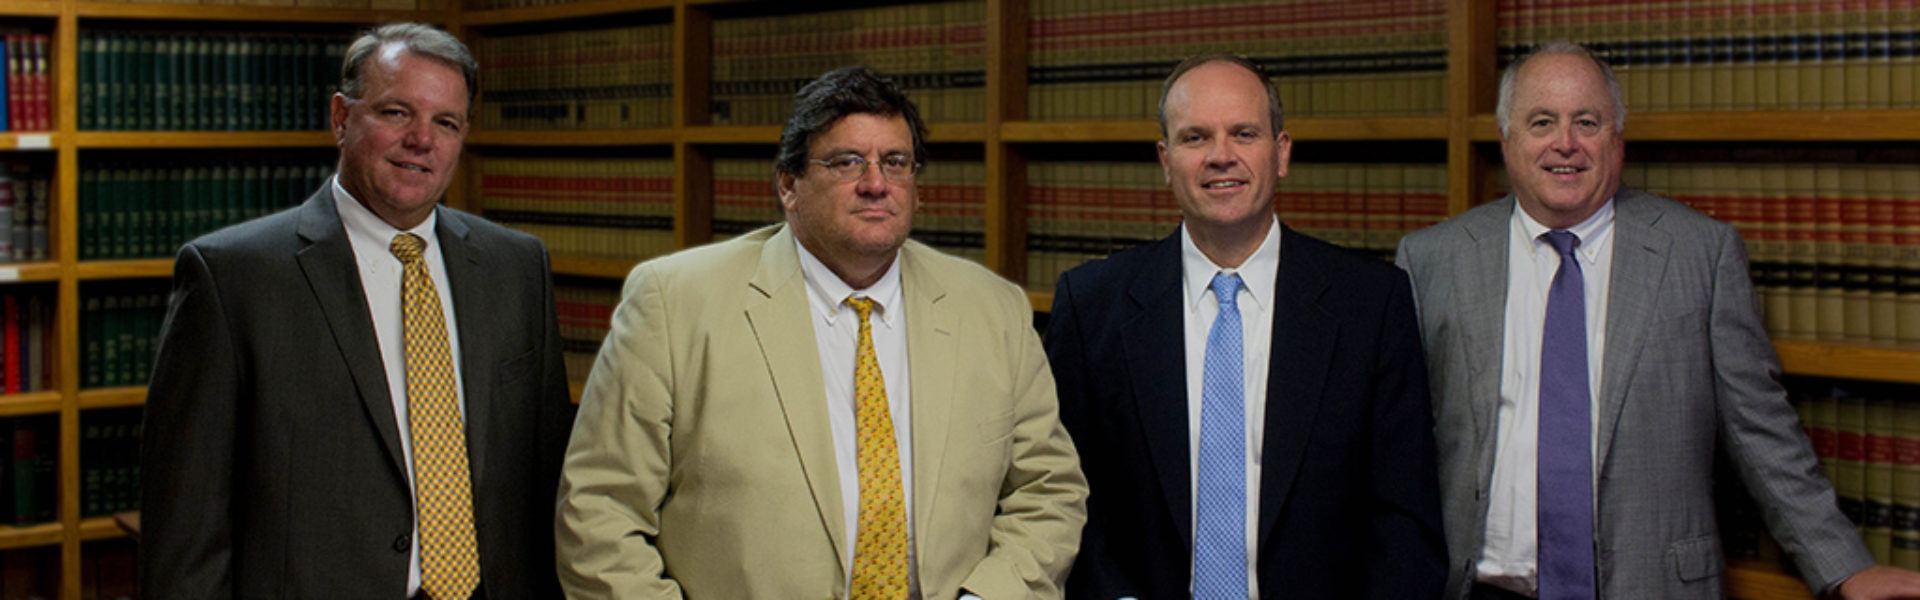 Attorneys | Manley Traeger Perry Stapp & Compton